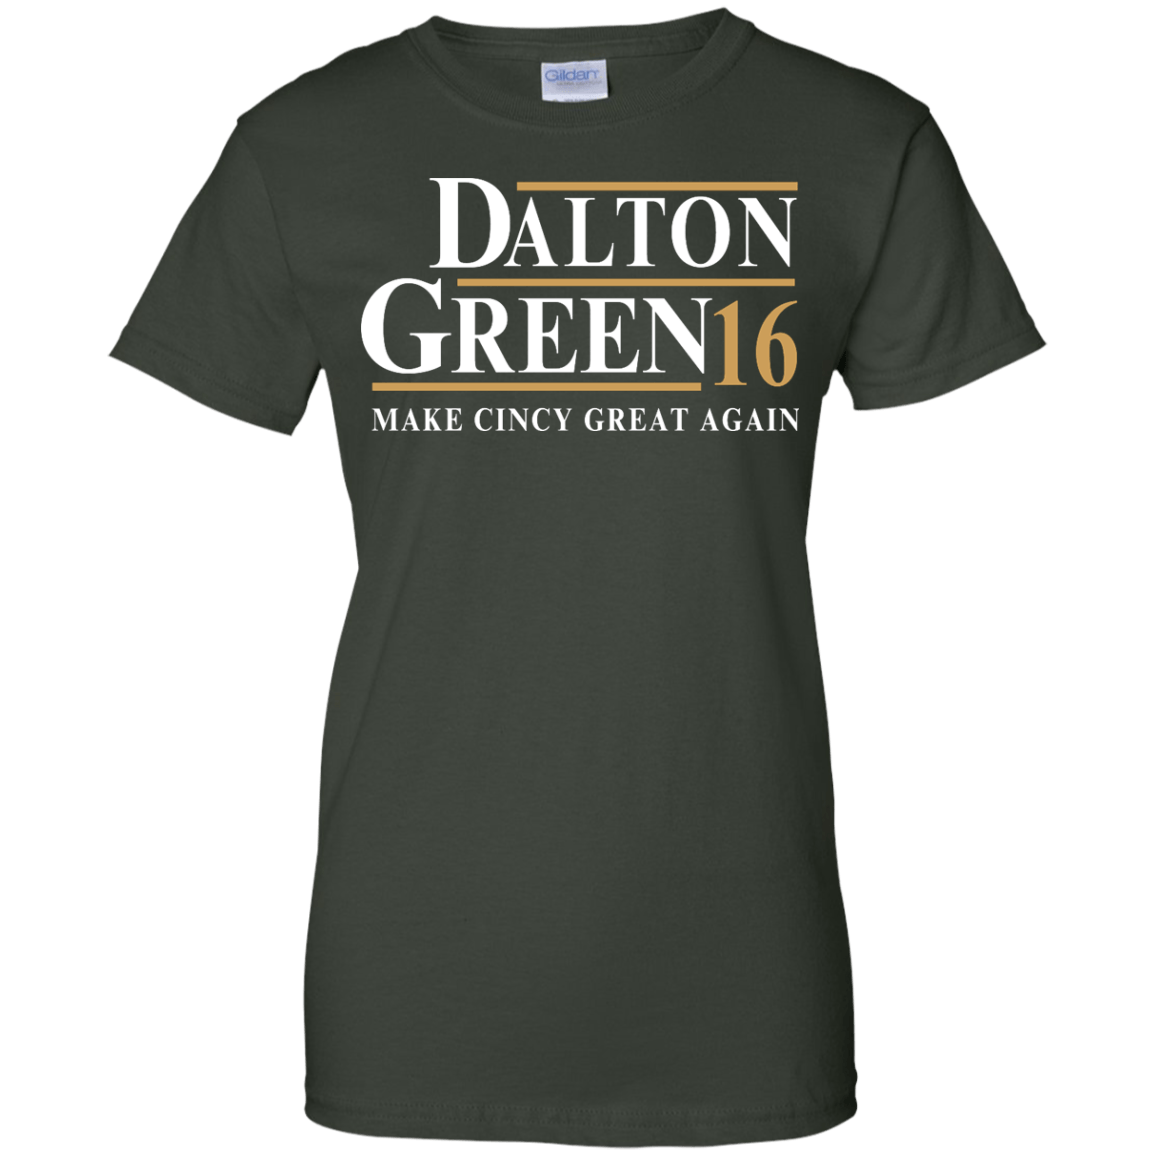 Dalton Green for president 2016 t shirt & hoodies, tank top